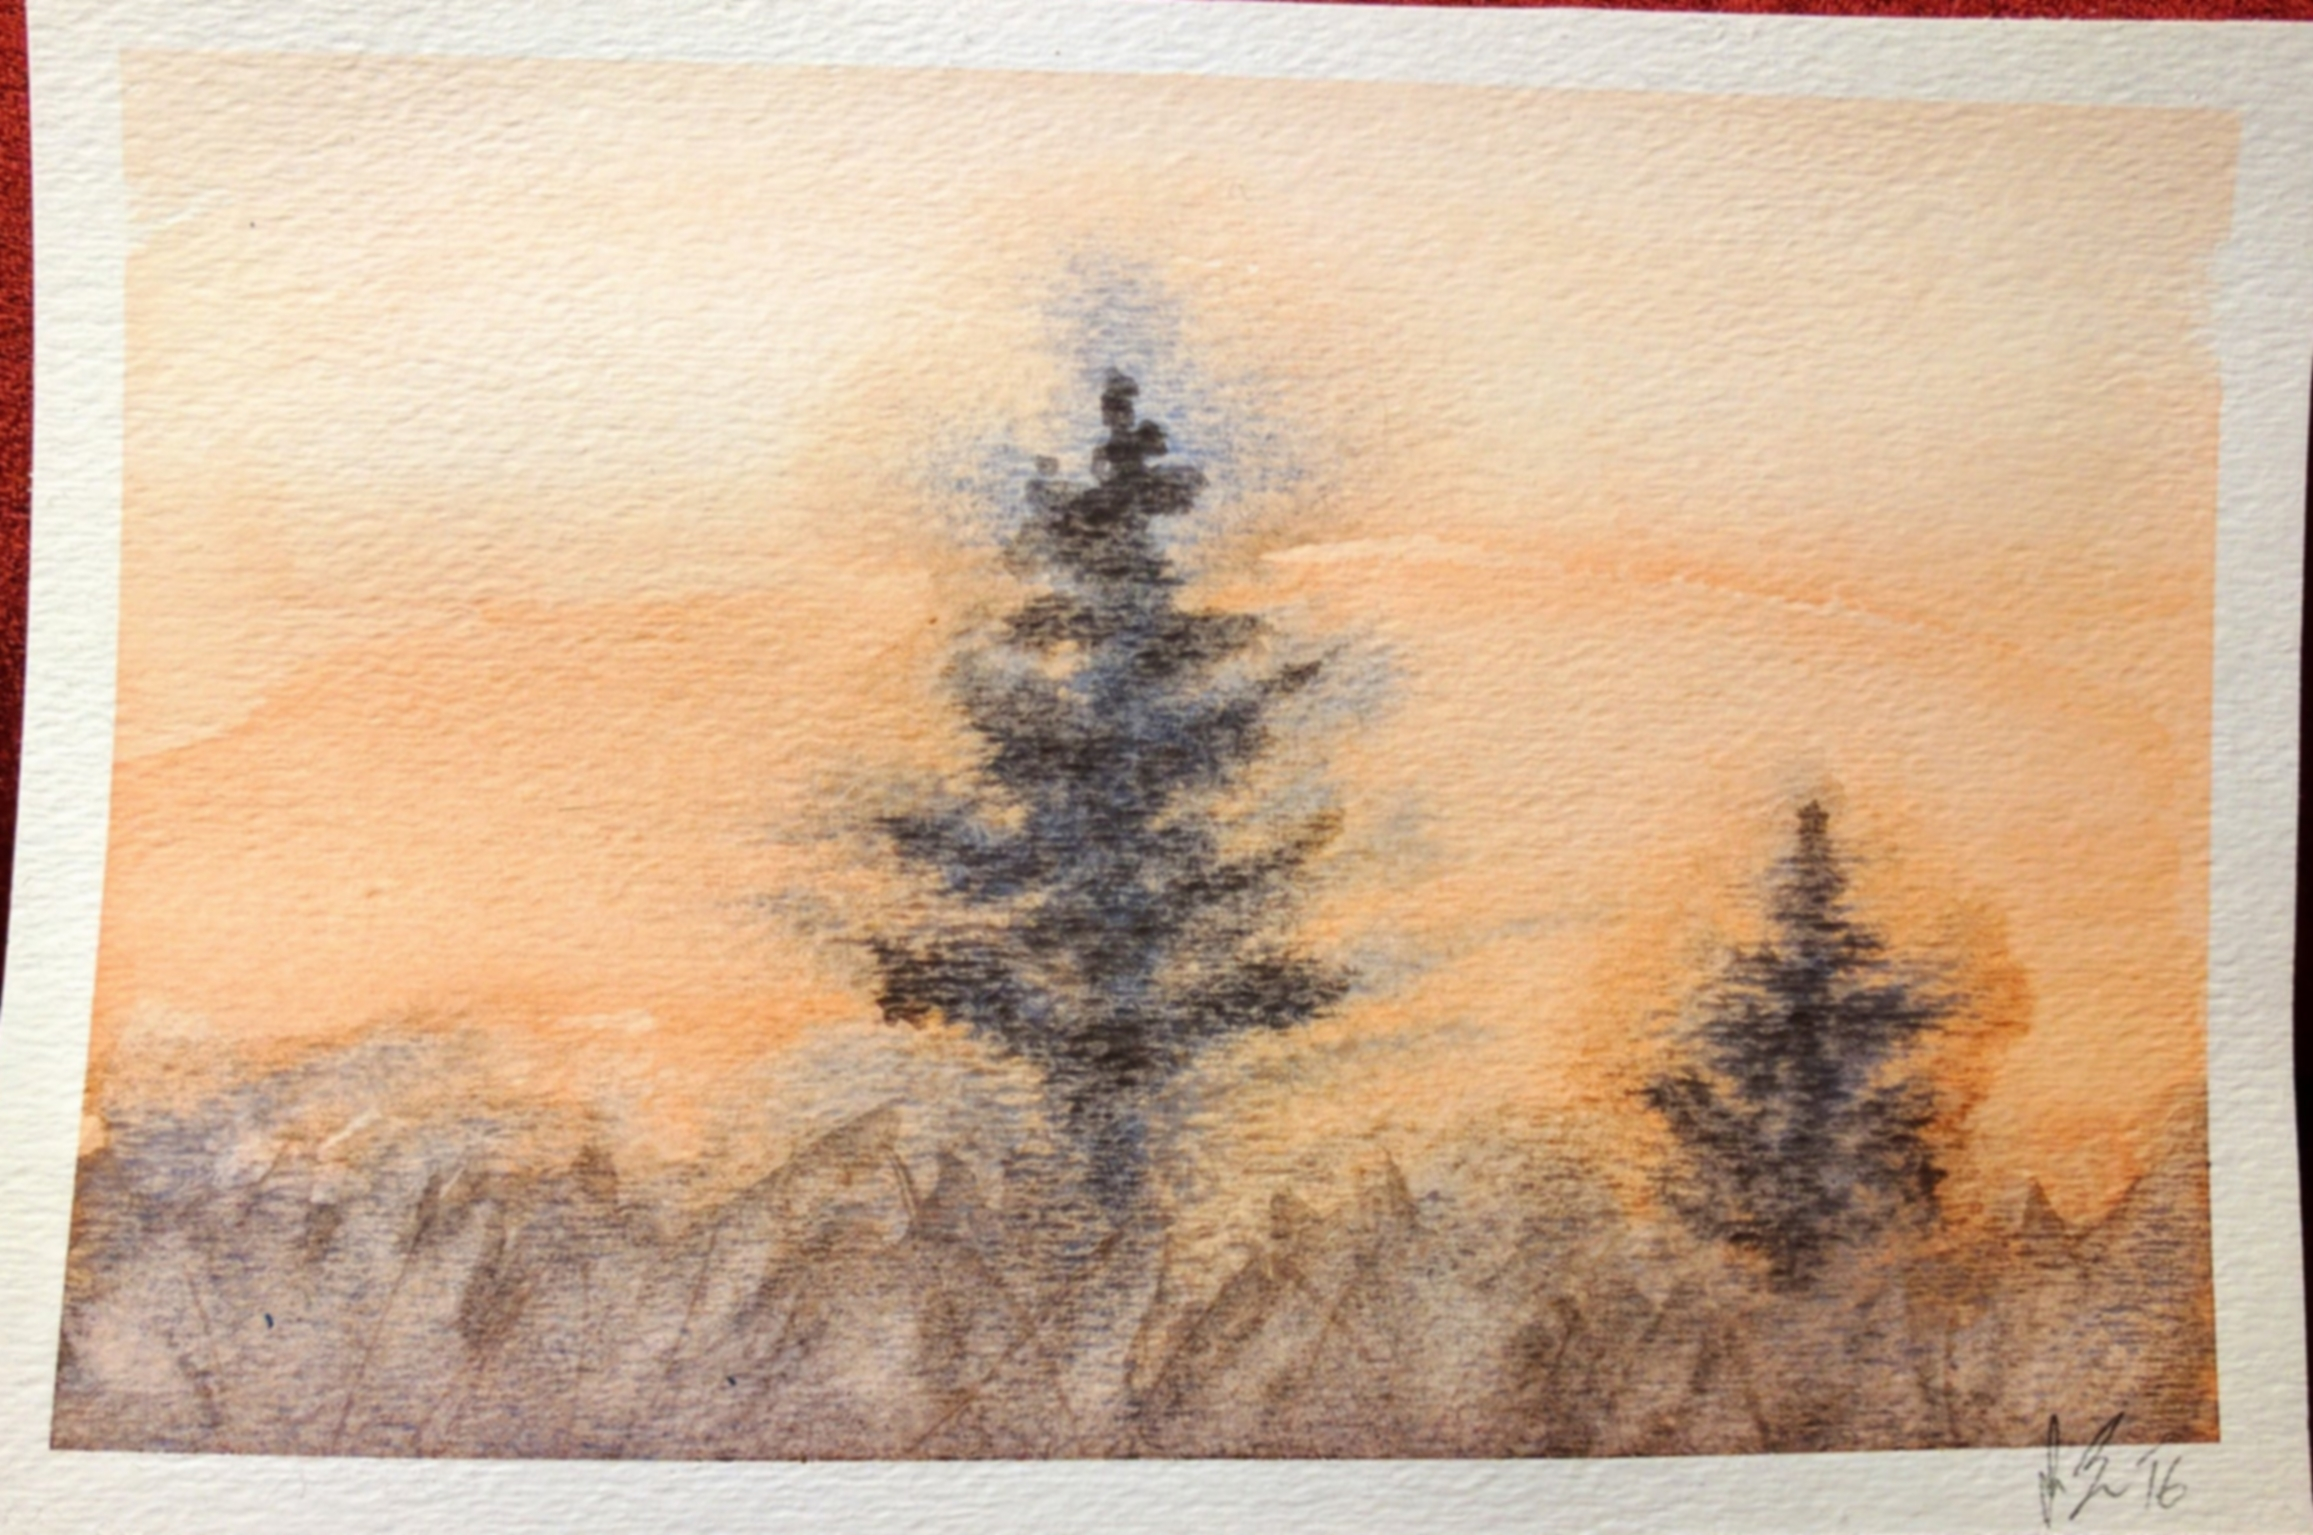 """December, 2016  My attempt at replicating the watercolor """"Two Pines"""" from a watercolor tutorial book I picked up. It needs work, especially in the trees. I'll probably try this one again."""